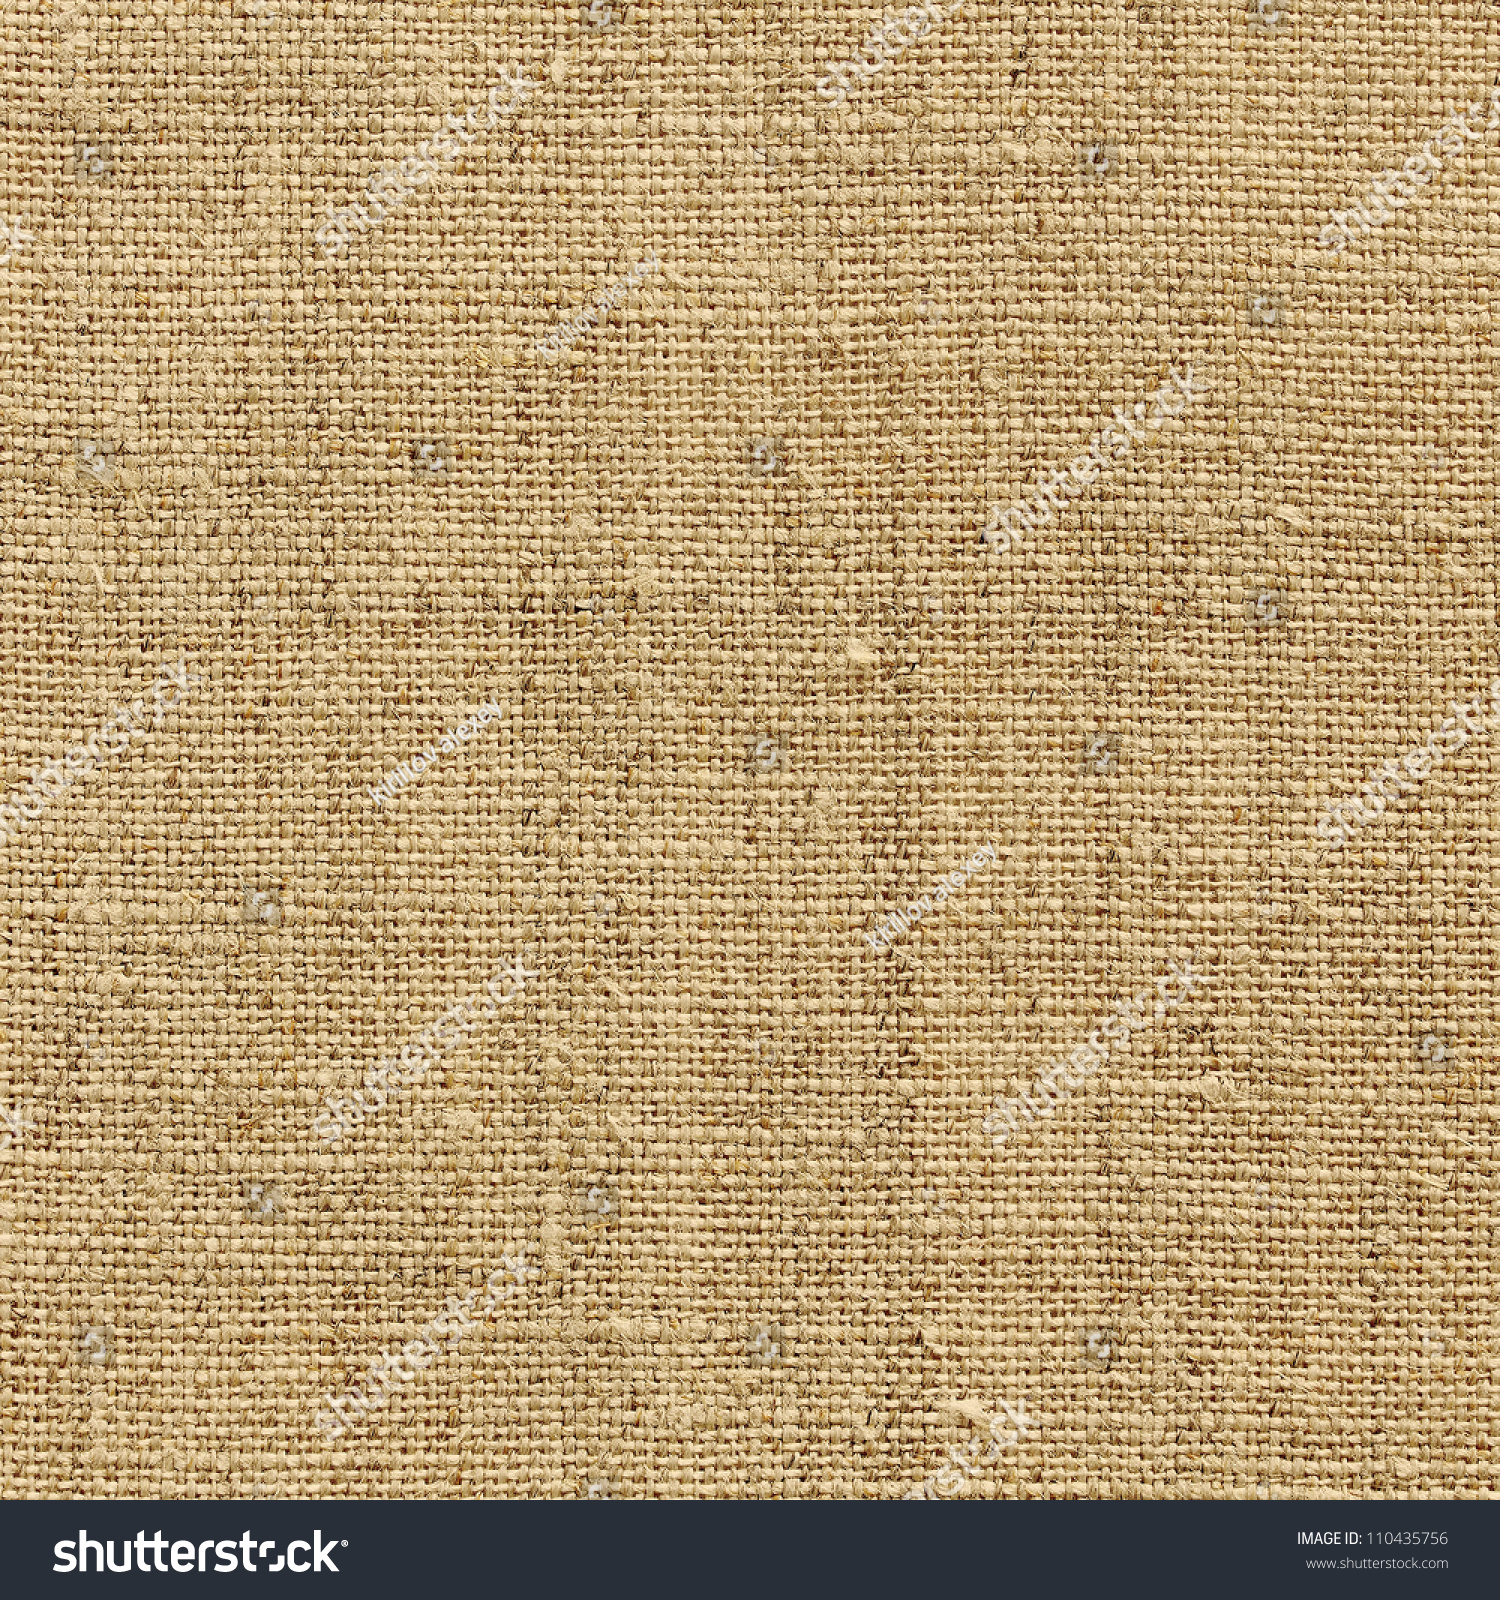 Line Texture Photo : Light natural linen texture background stock photo